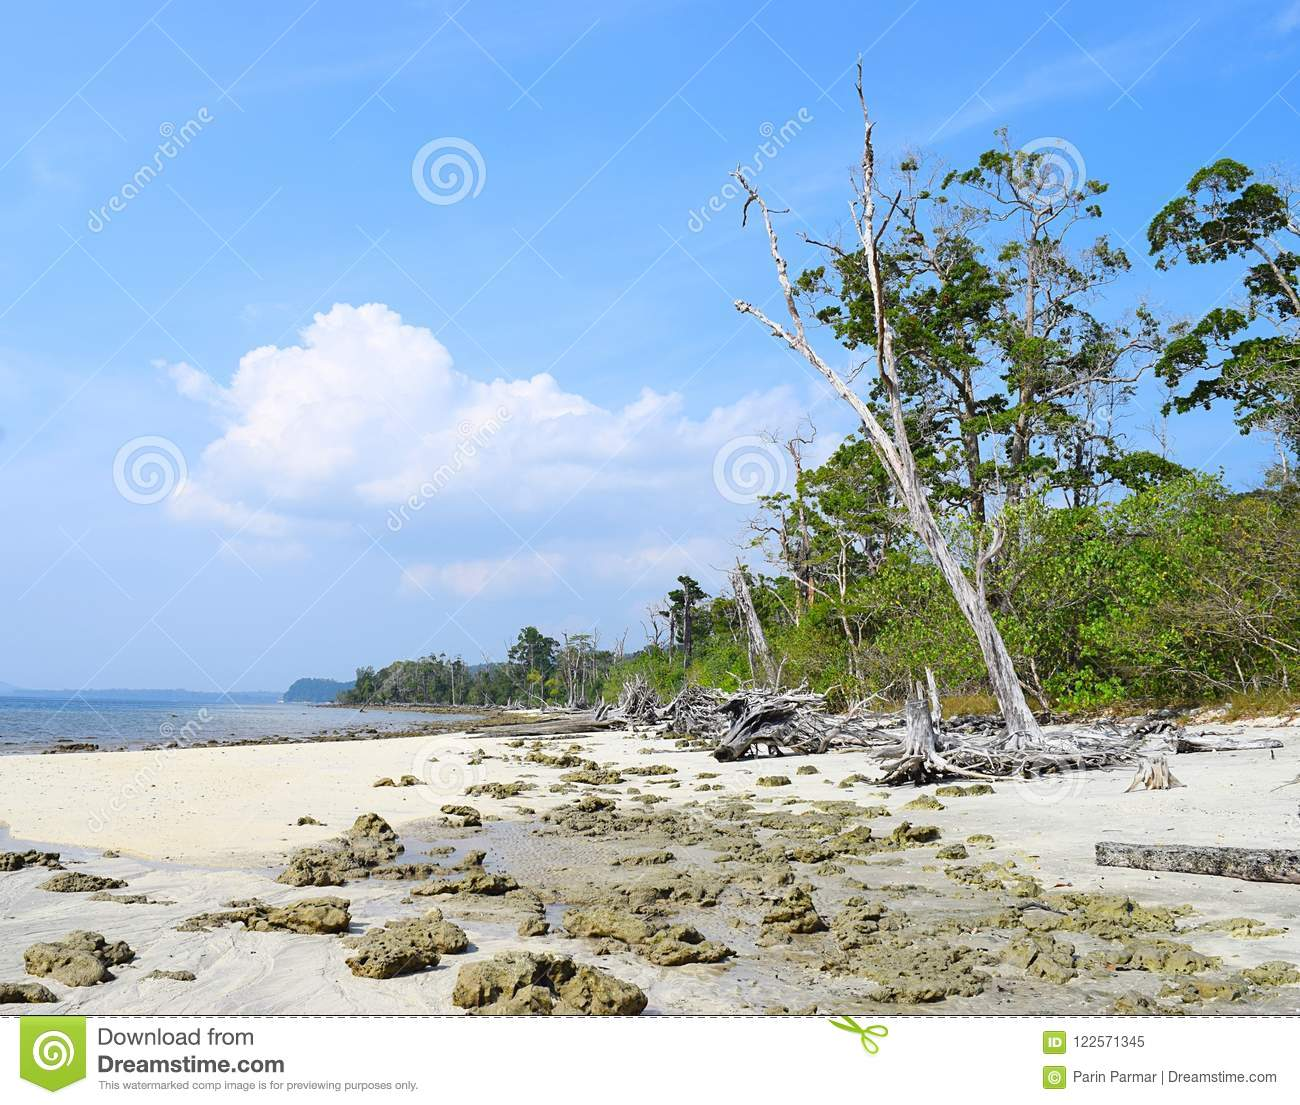 Havelock Island: Peaceful Rocky Elephant Beach With Trees And Blue Sky